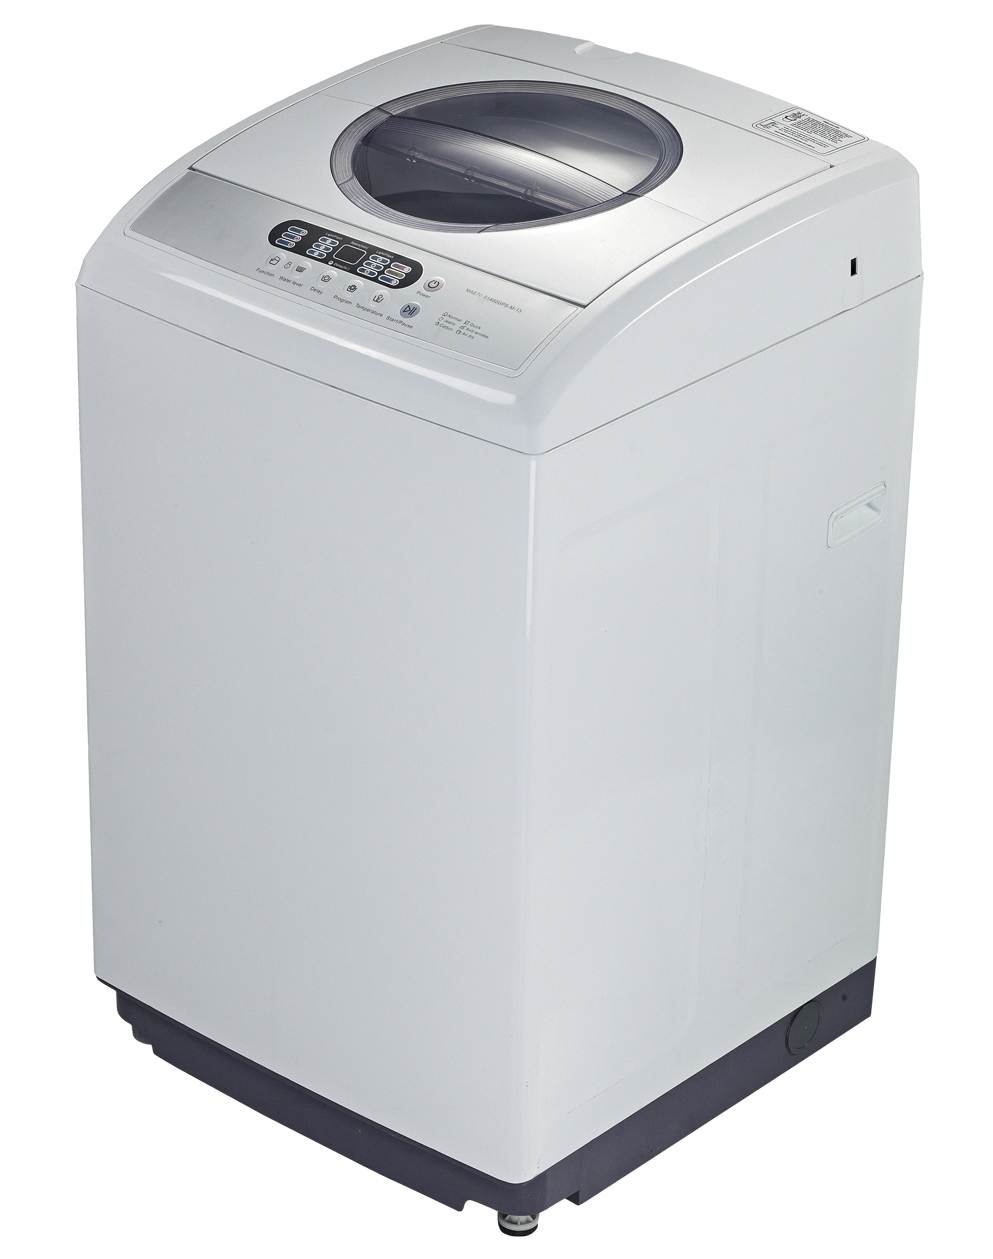 washing machine, ram png image pngpix 20619